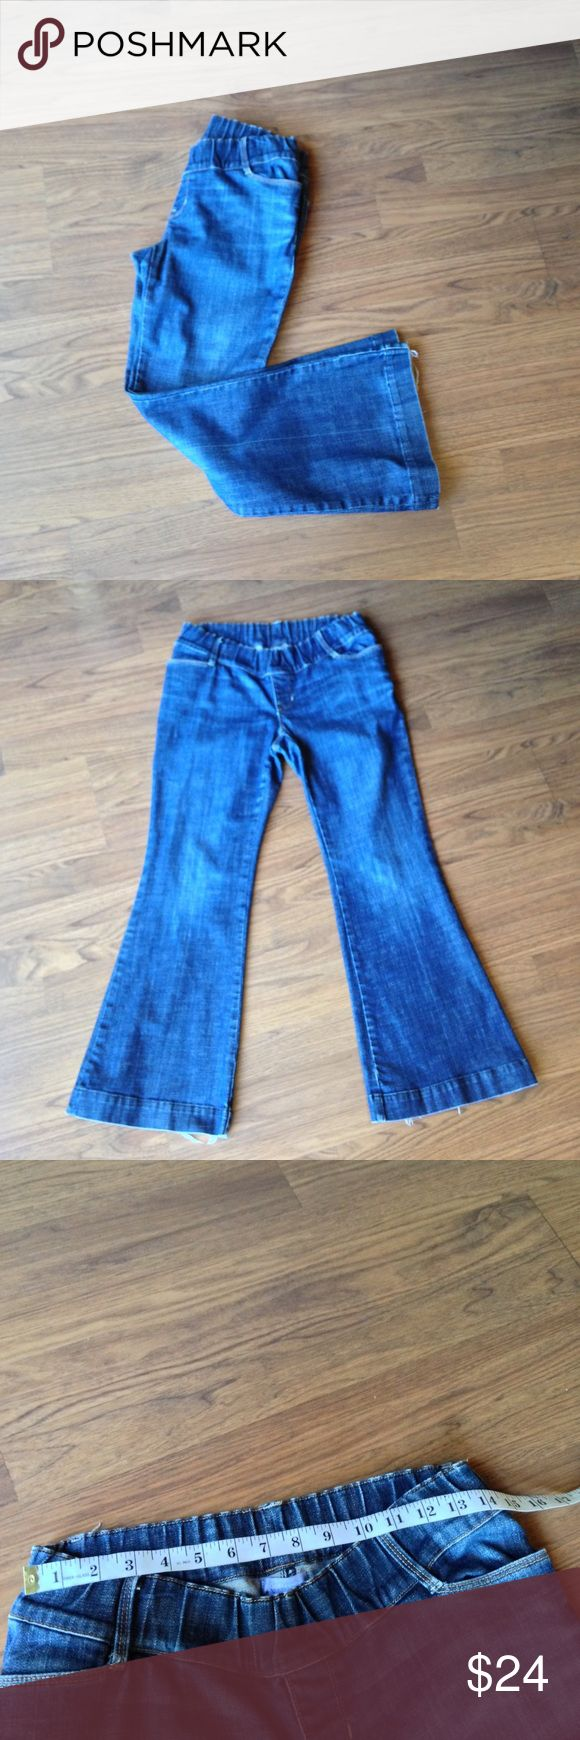 """Gap maternity jeans size 6 short Ankle boot cut Gap maternity jeans. SZ 6. Sits below belly. Short 27"""" inseam. Has Wear on the hems of legs. GAP Jeans Boot Cut"""